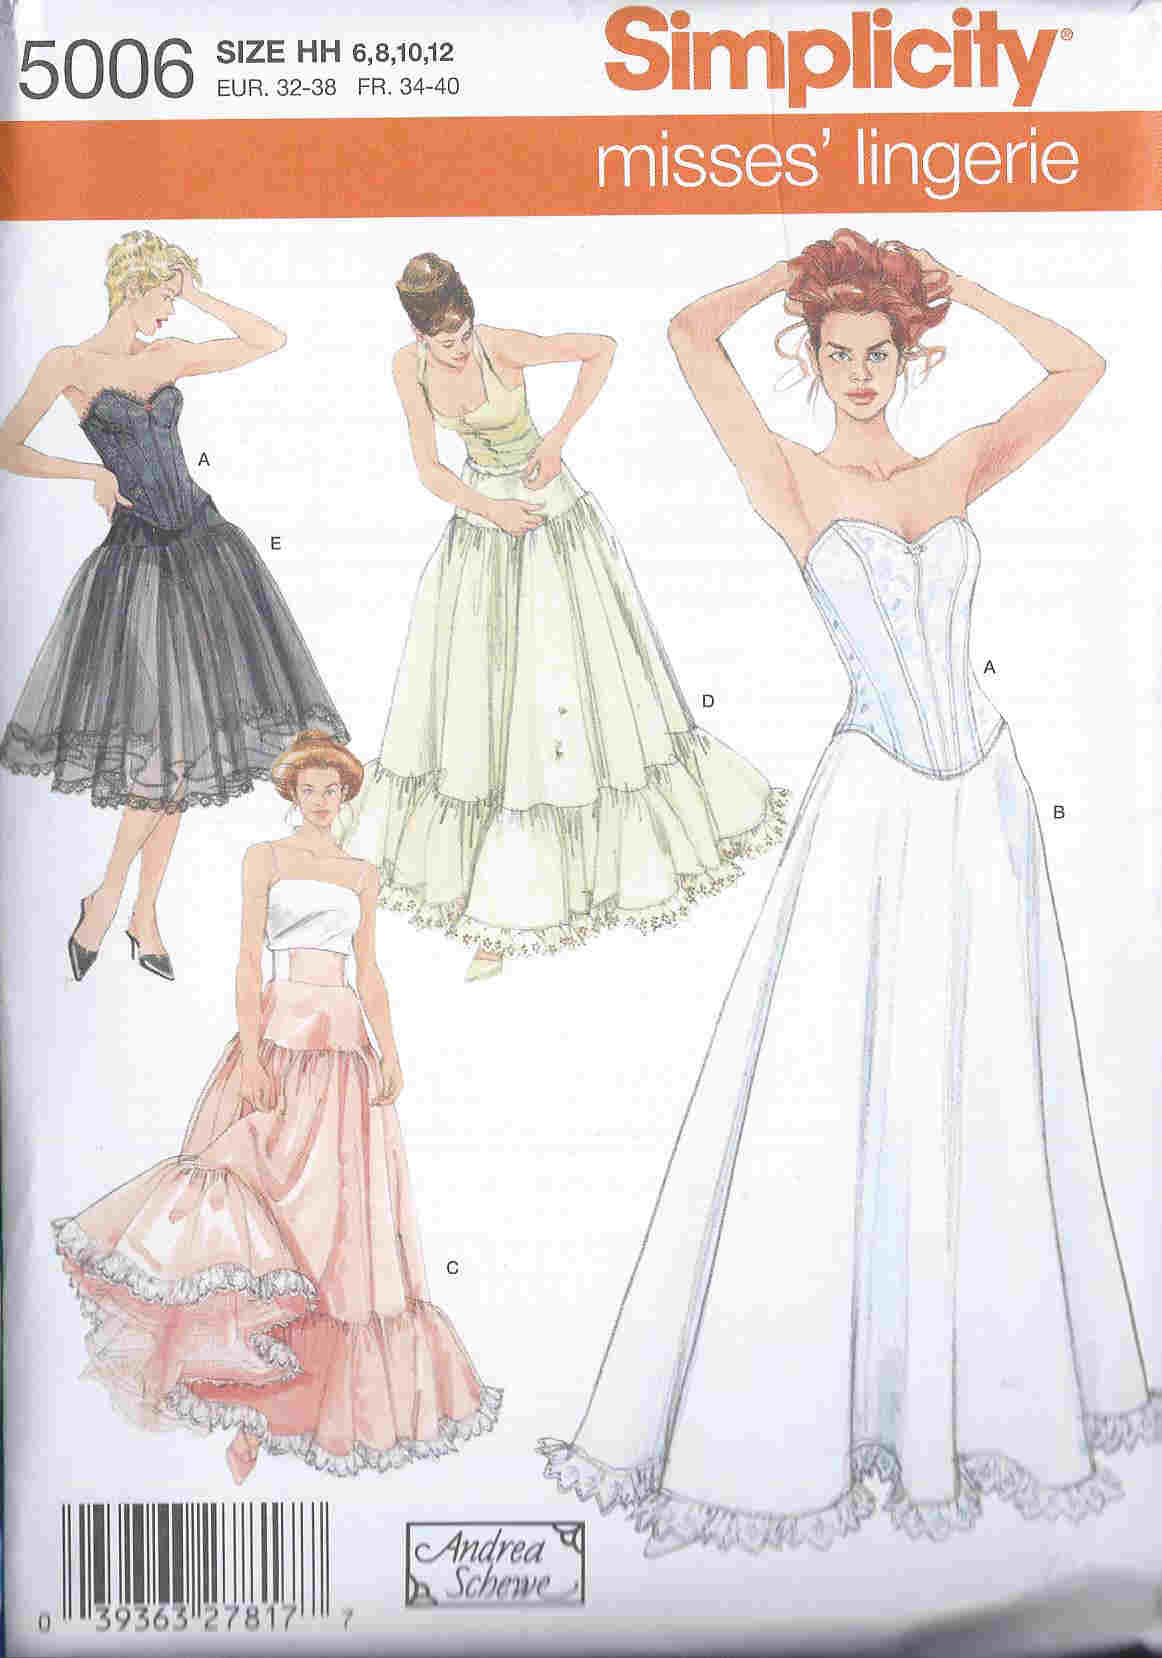 Petticoat sewing pattern